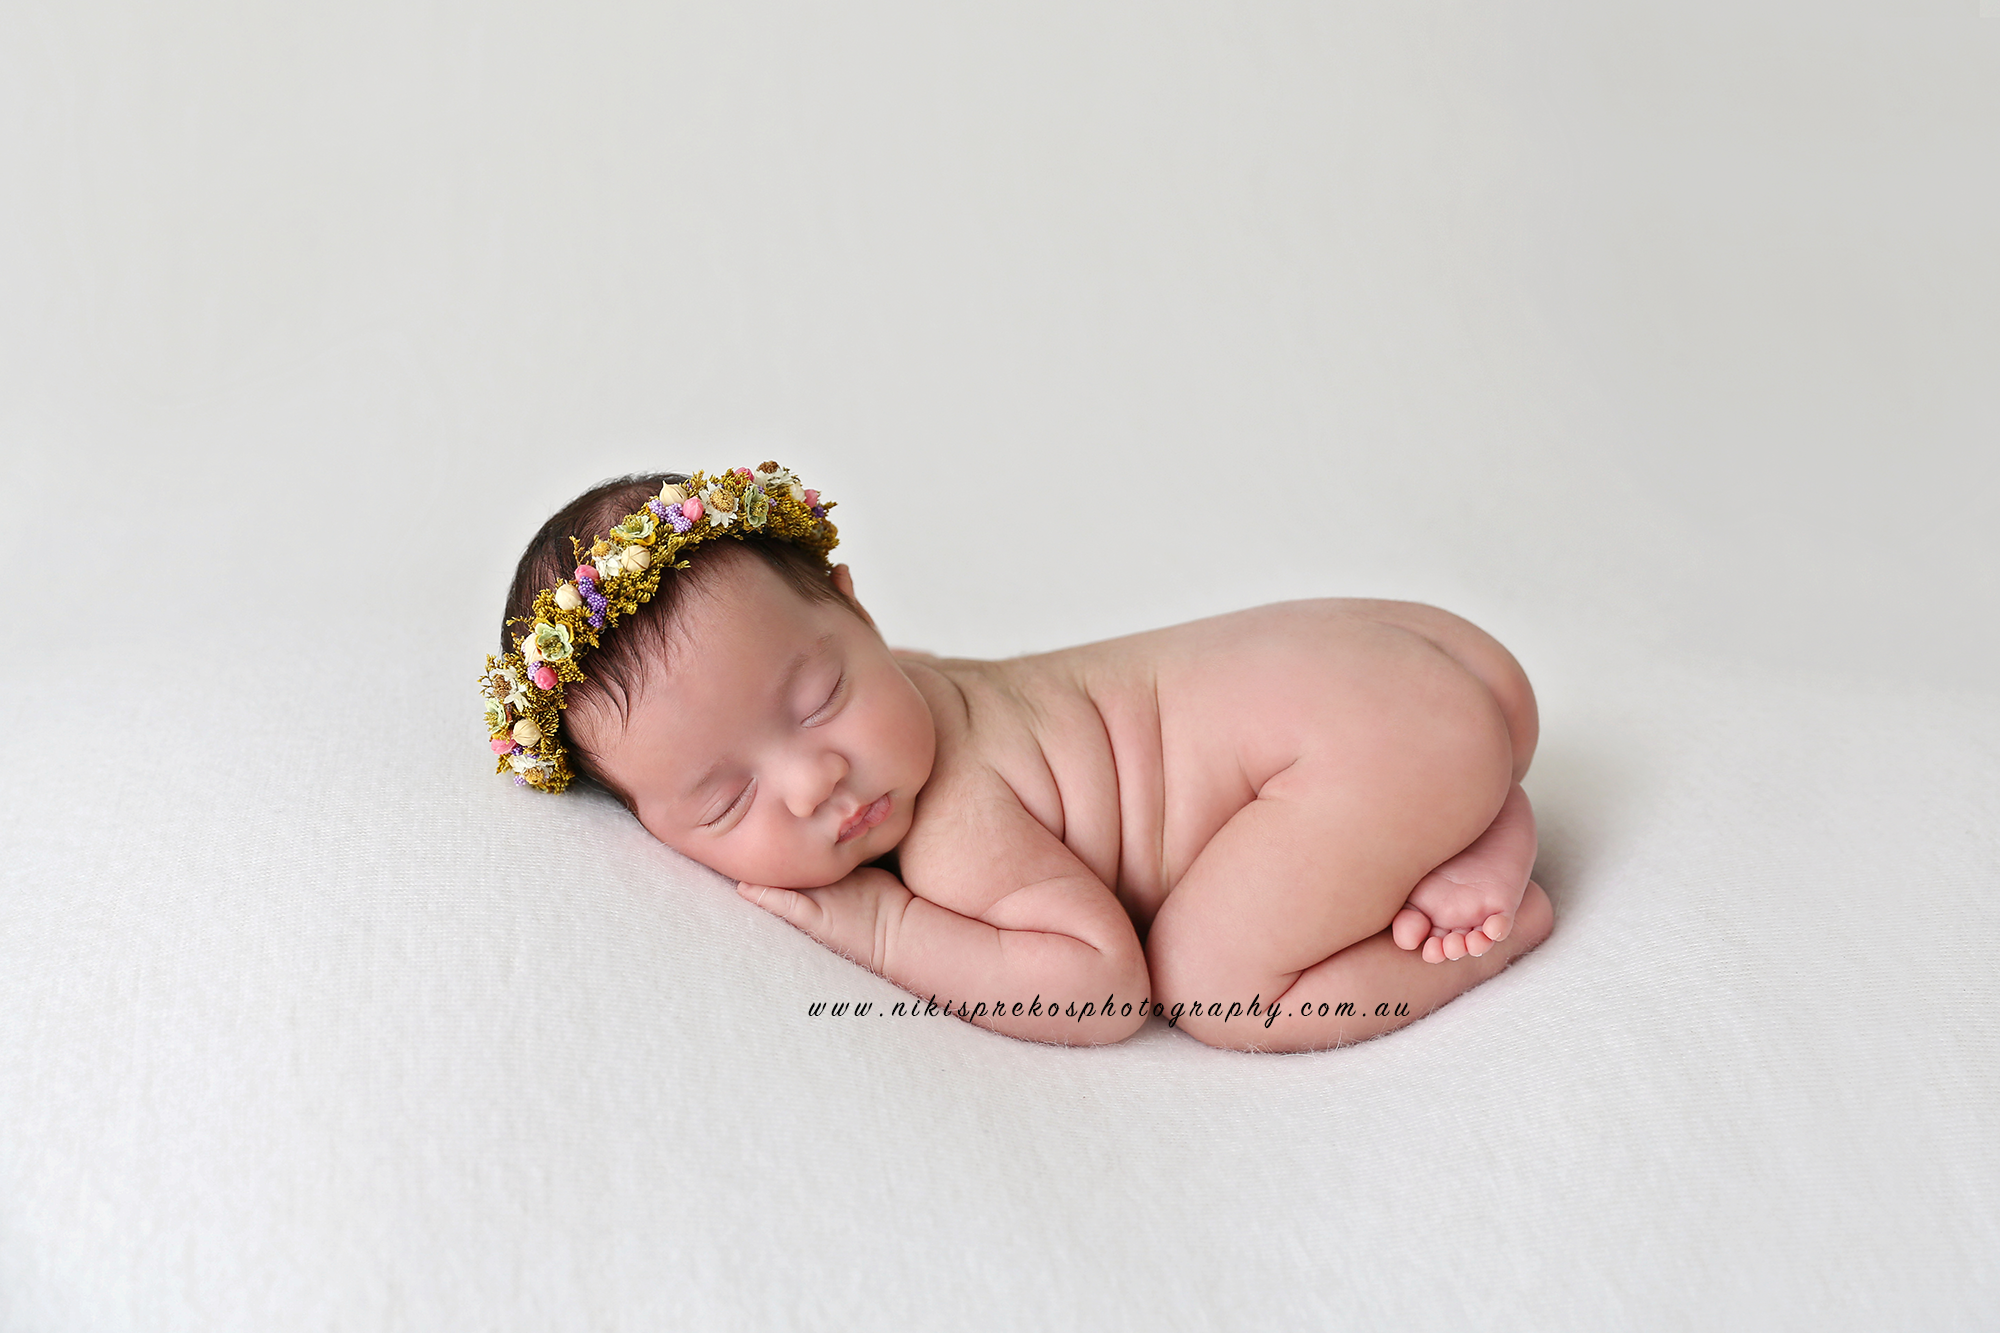 Niki Sprekos Photography, Newborn Gallery